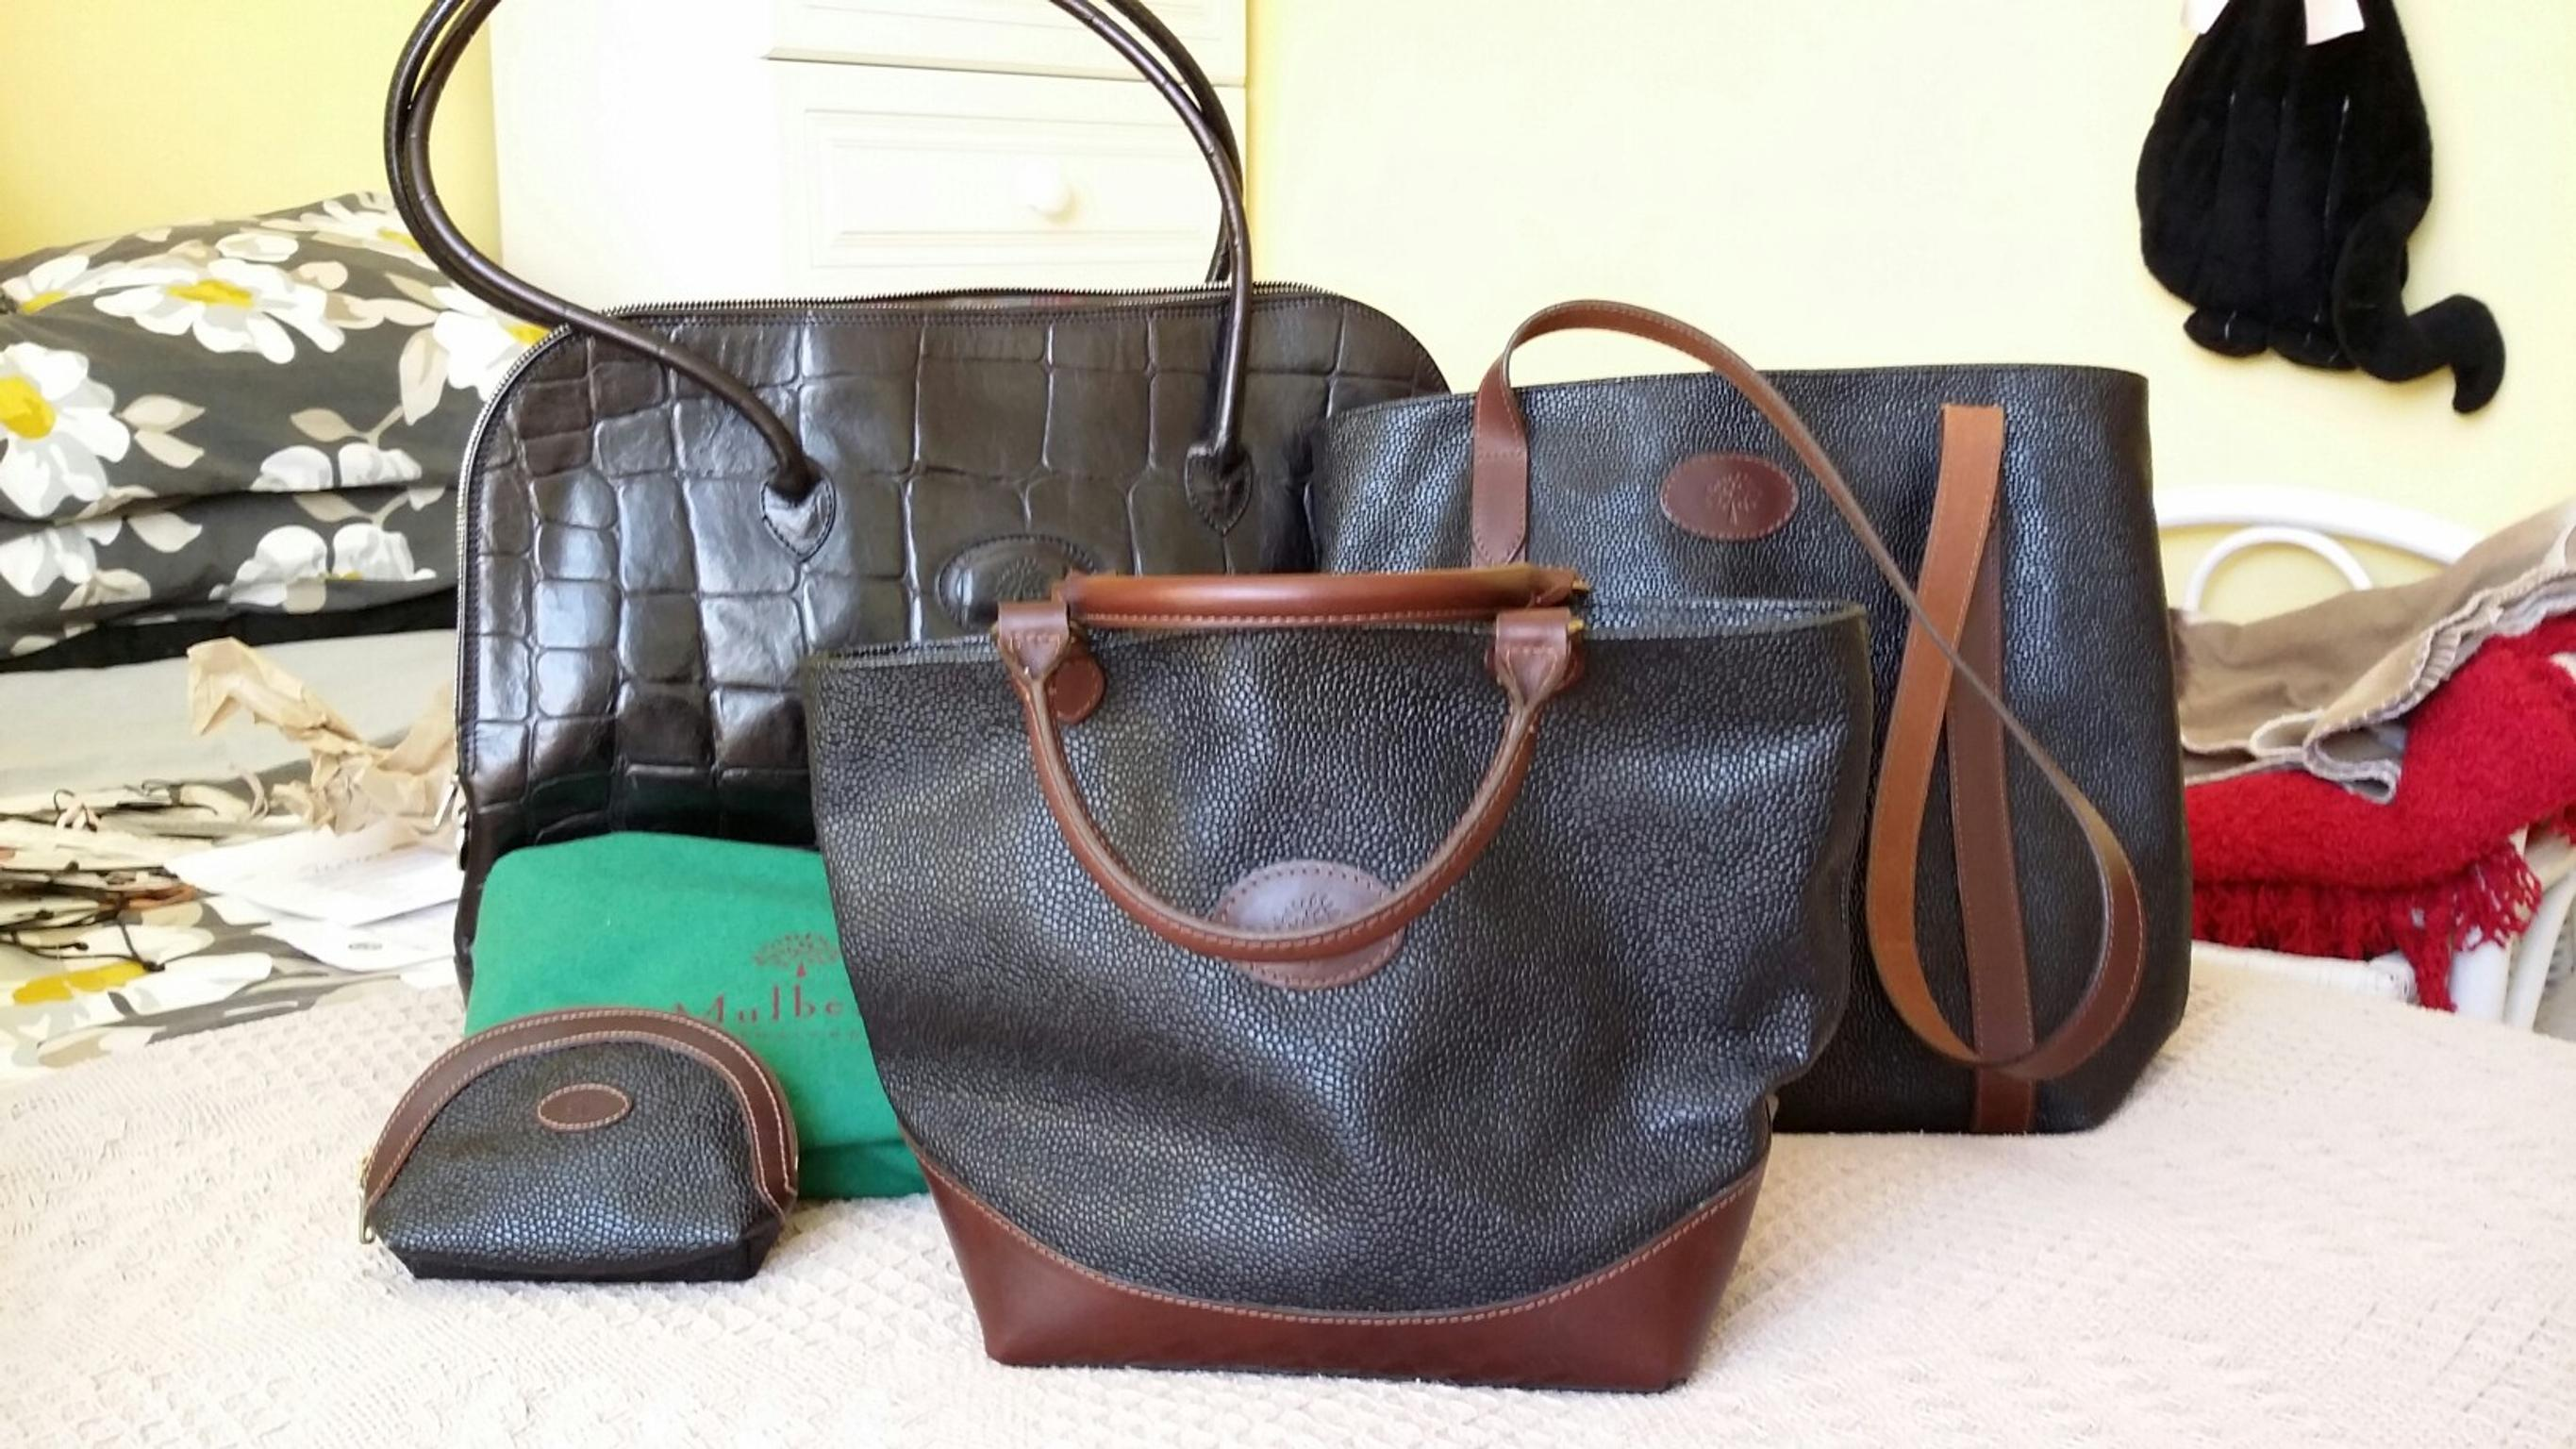 c59e99eeb77 3 GENUINE VINTAGE MULBERRY BAGS in CV31 Royal Leamington Spa for £300 -  Shpock